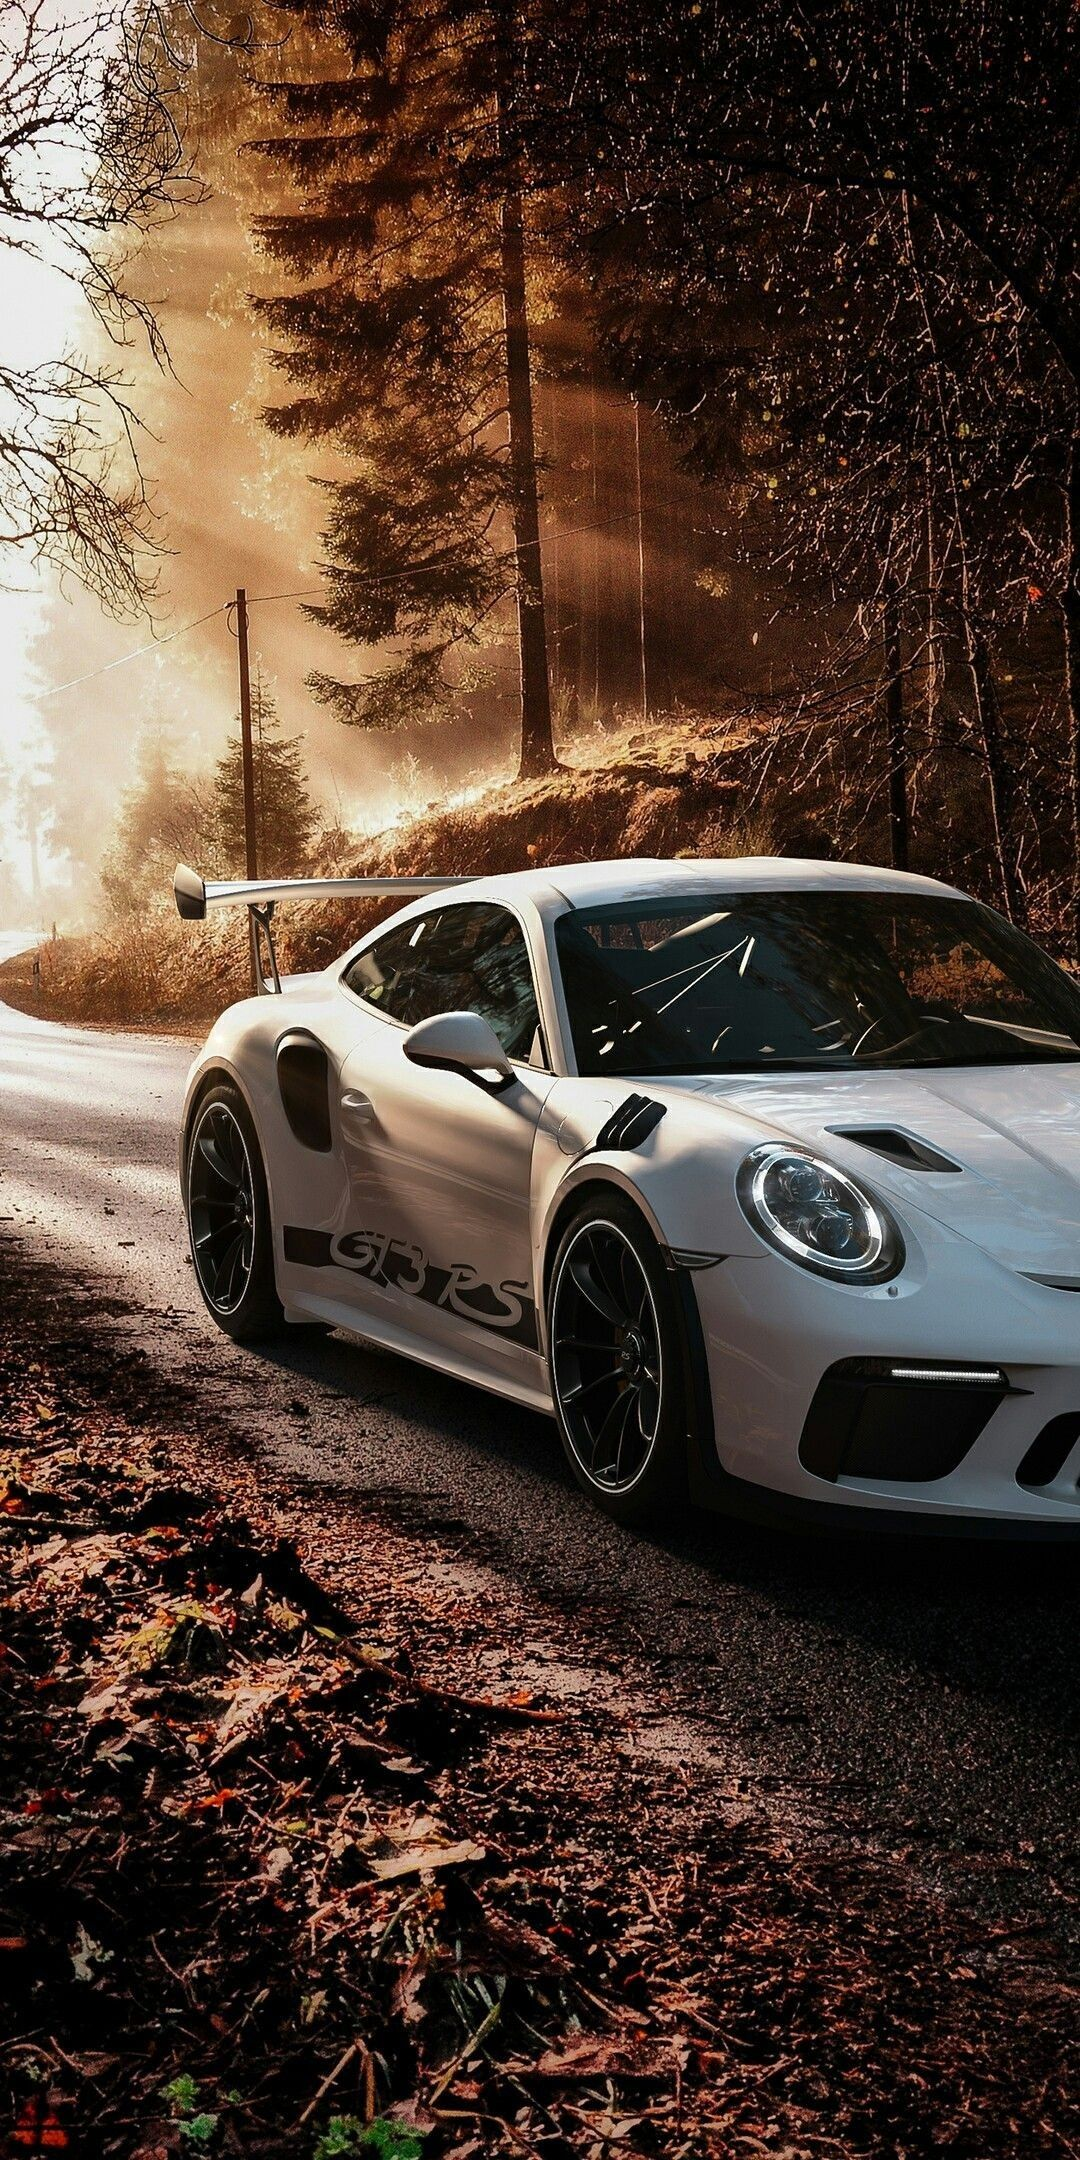 Porsche Gt3 Rs Best Luxury Cars Luxury Cars Porsche Cars